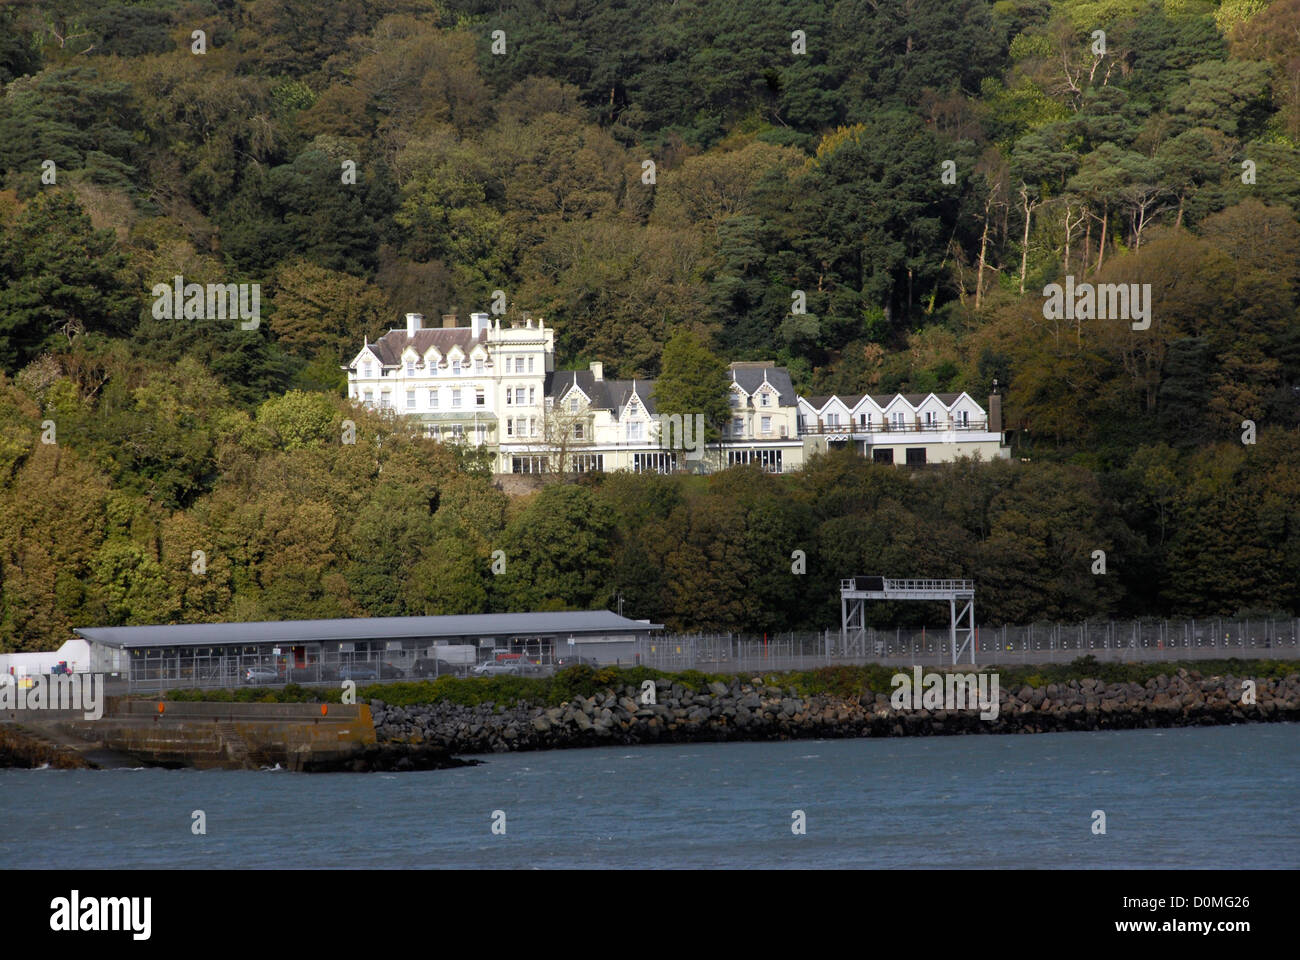 Fishguard Bay Hotel, Goodwick , Wales, UK - Stock Image